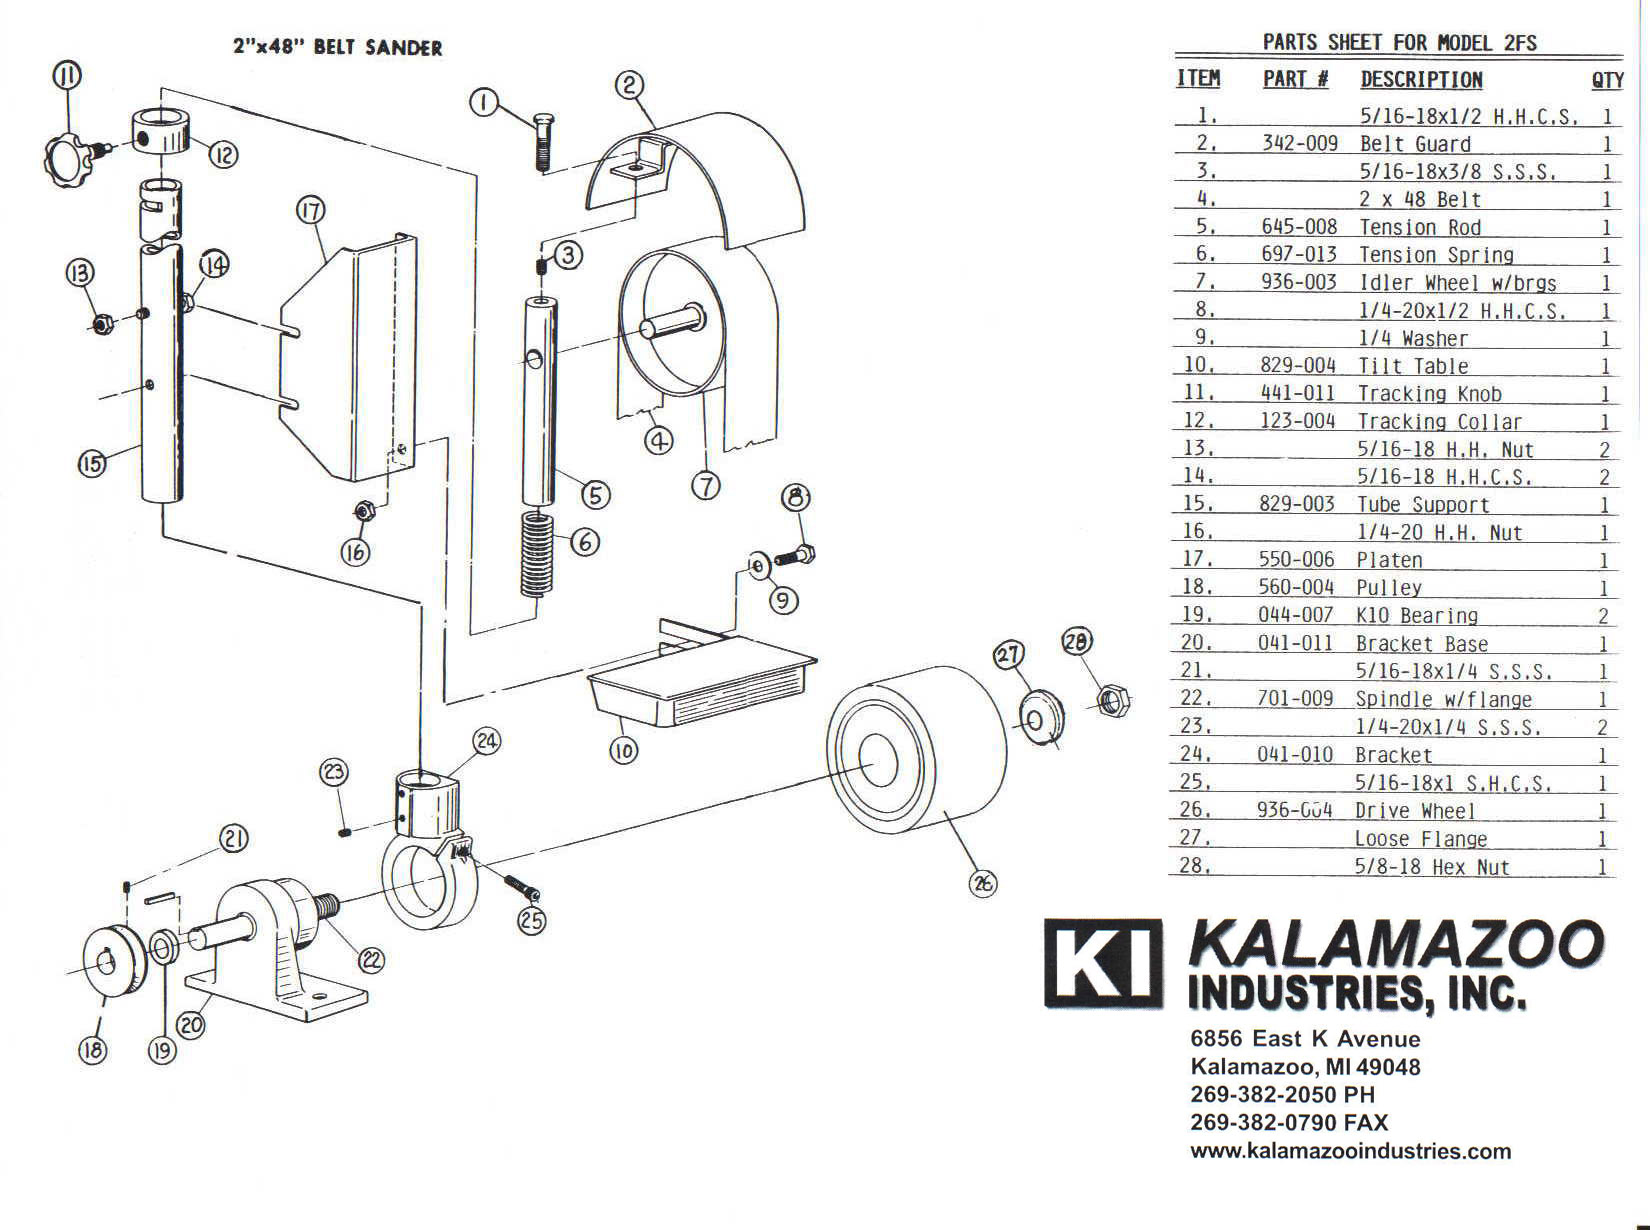 Ingersoll Rand Roller Parts Manual